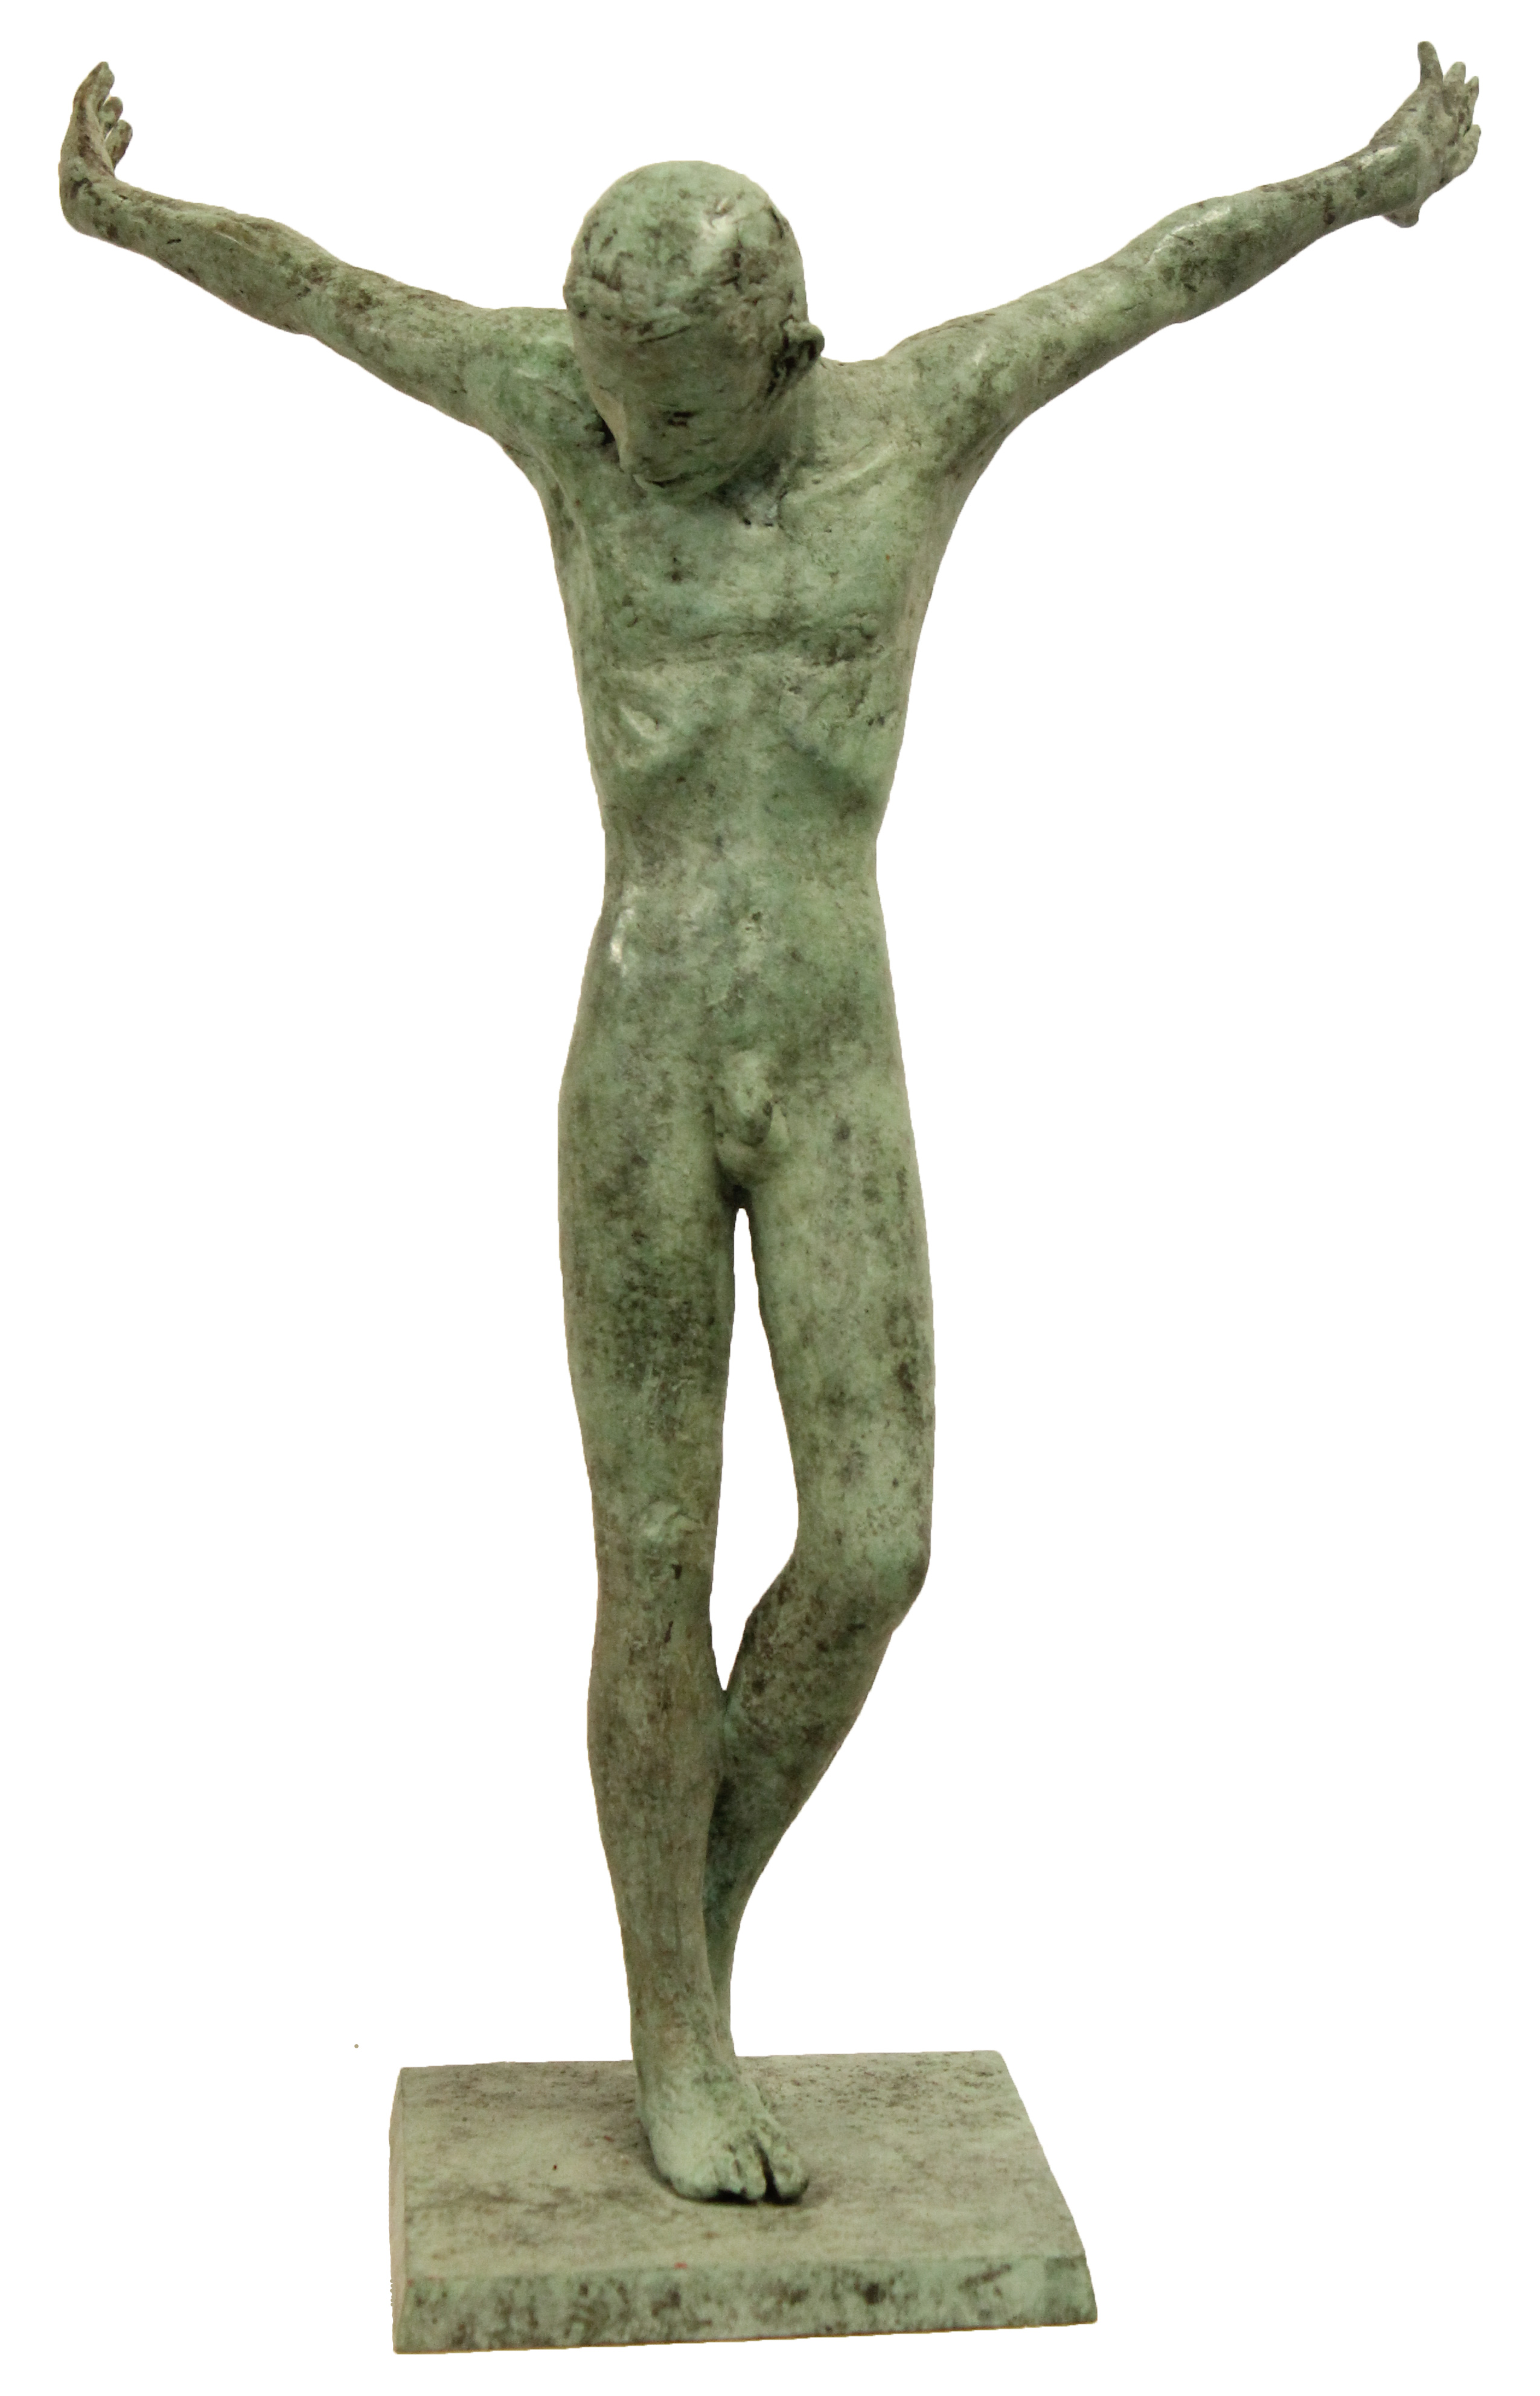 'Male with Outstretched Arms', Bronzee, edt of 12, 40cm x 30cm x 32cm, E2500